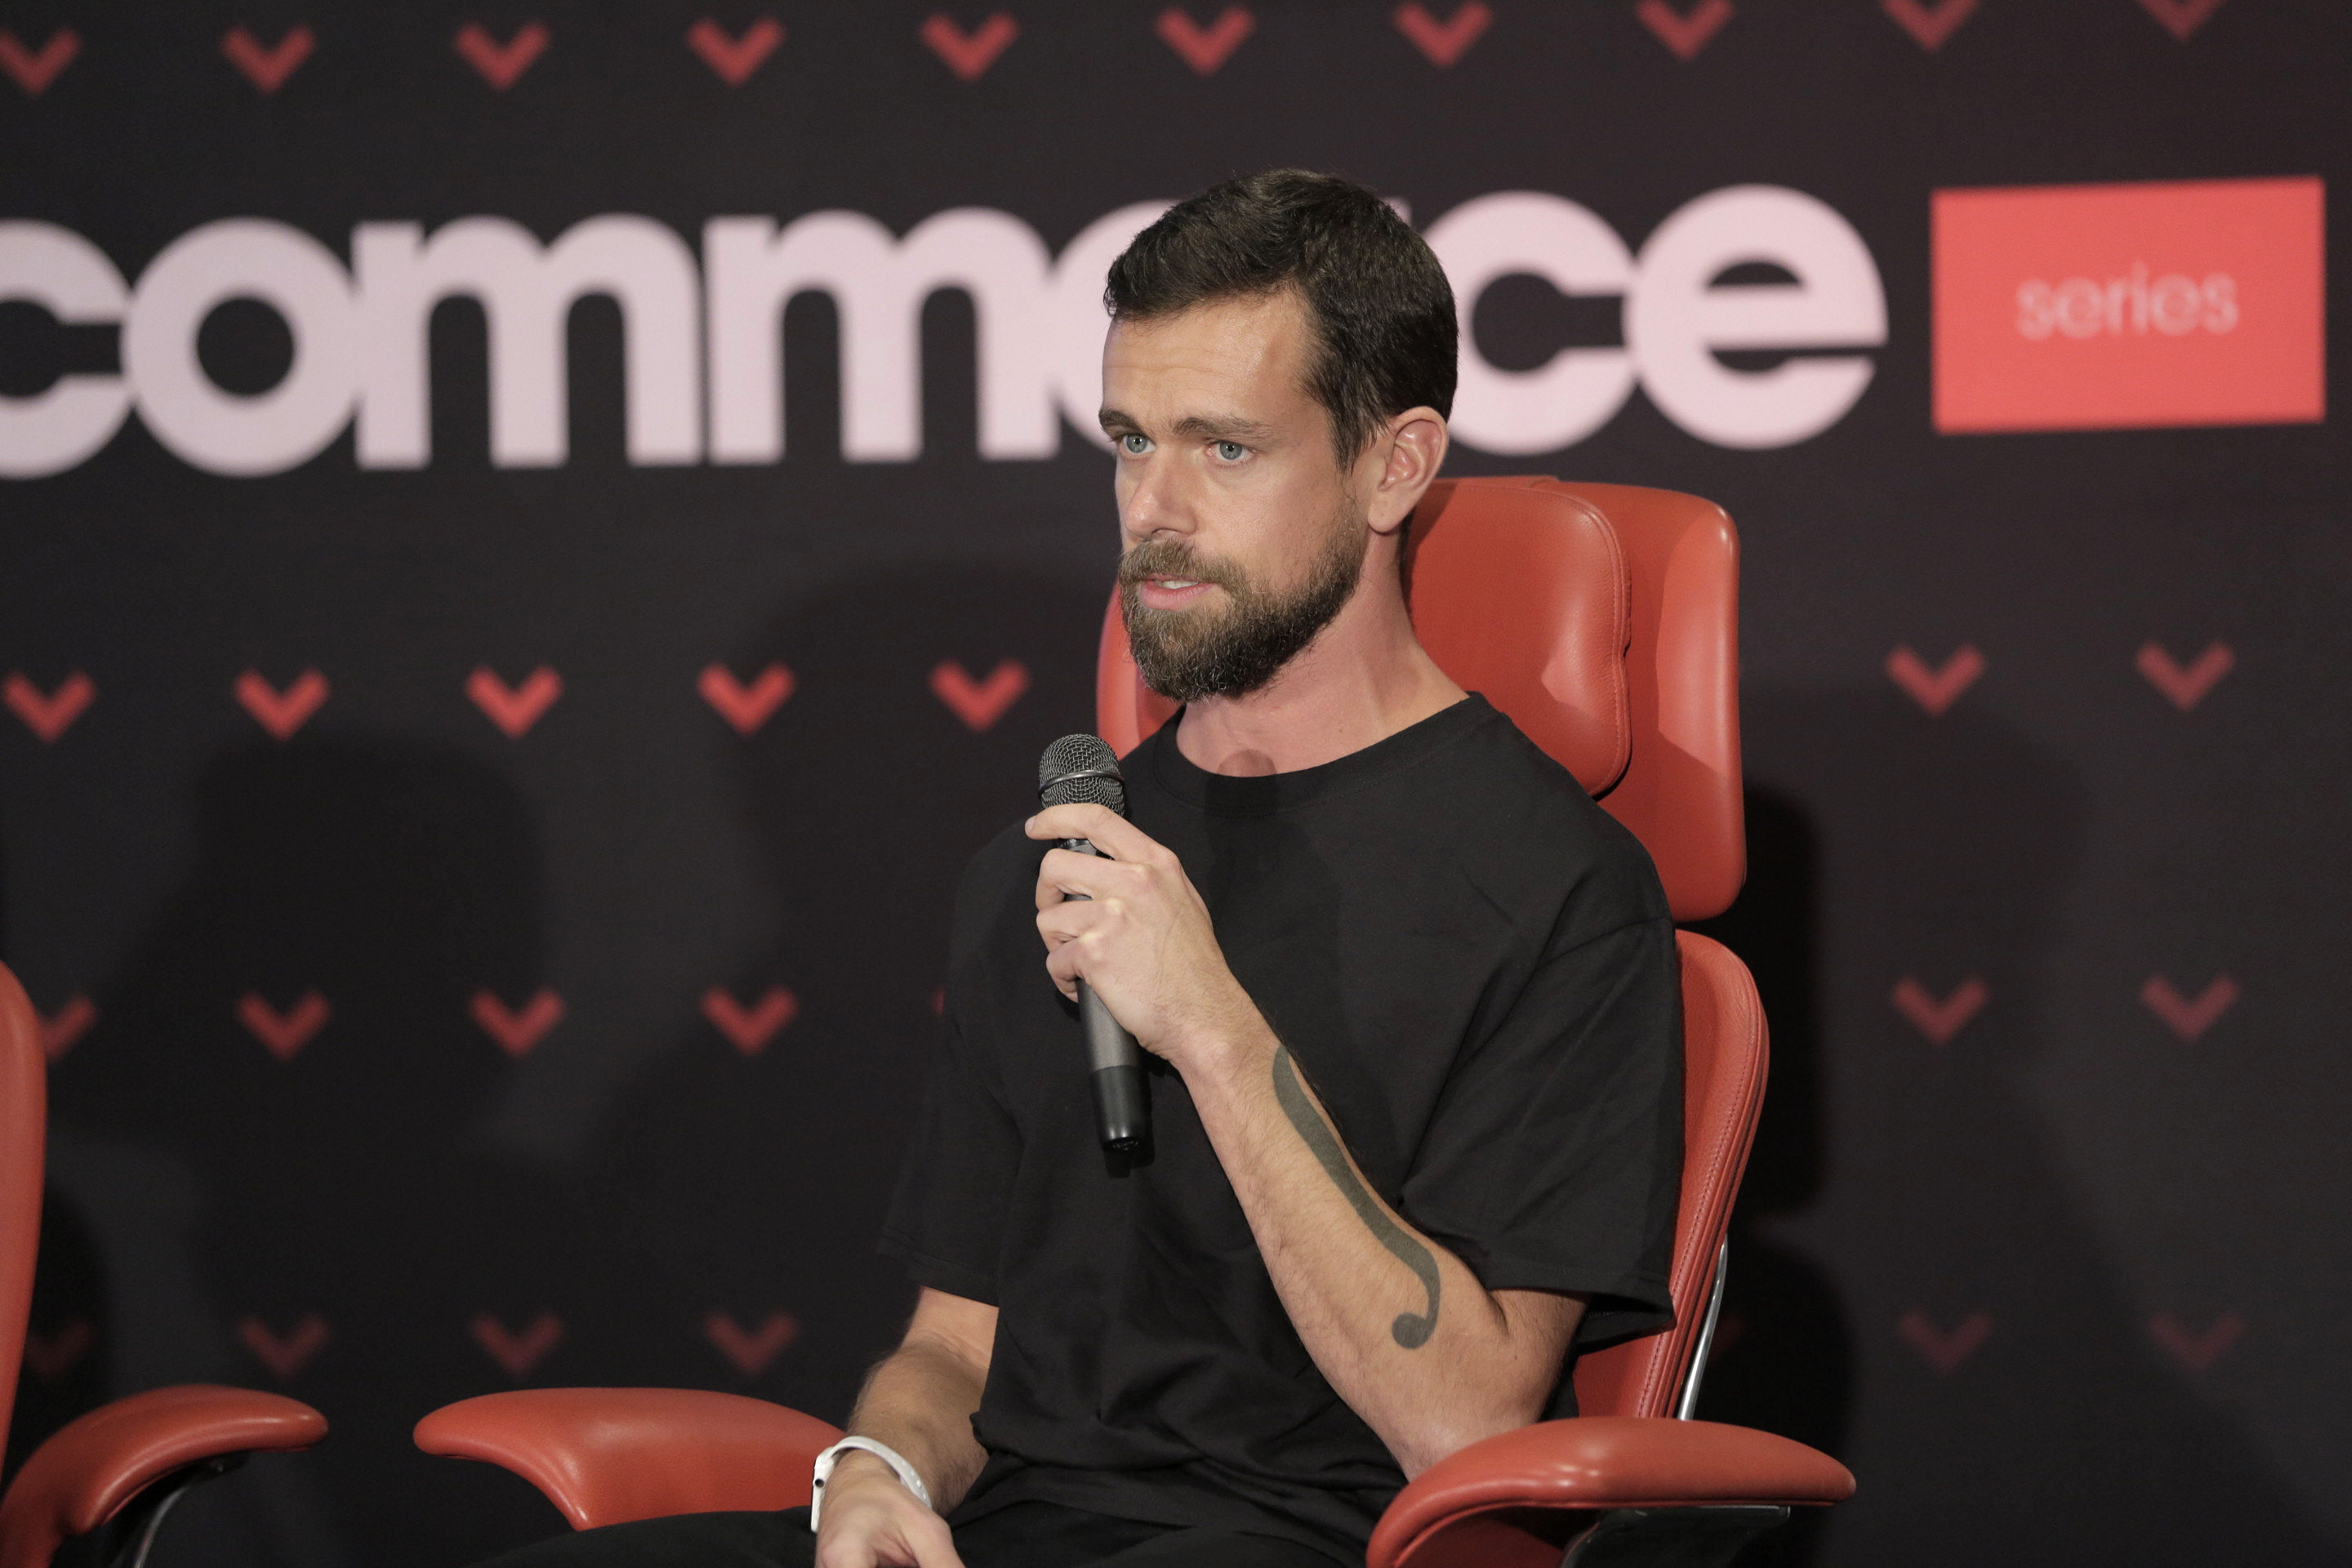 jack dorsey has done a good job of hiring women into positions of power